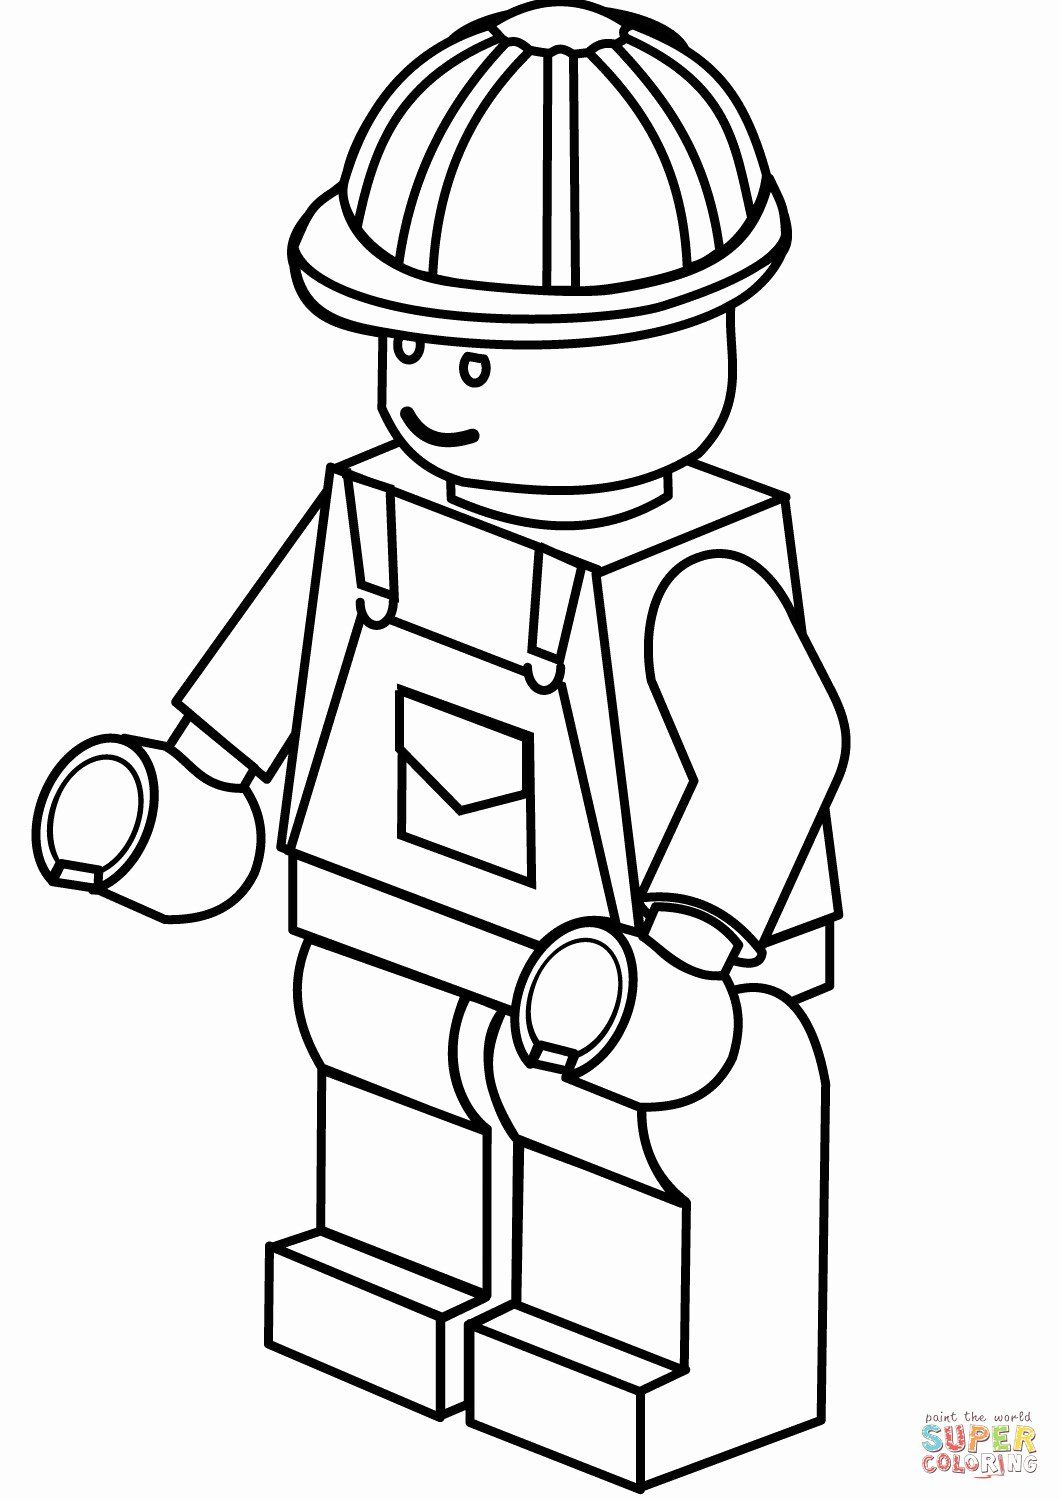 Construction Vehicle Coloring Pages Lovely Ultimate Construction Coloring Pages Lego Wo Ninjago Coloring Pages Joker Coloring Pages Construction Coloring Pages